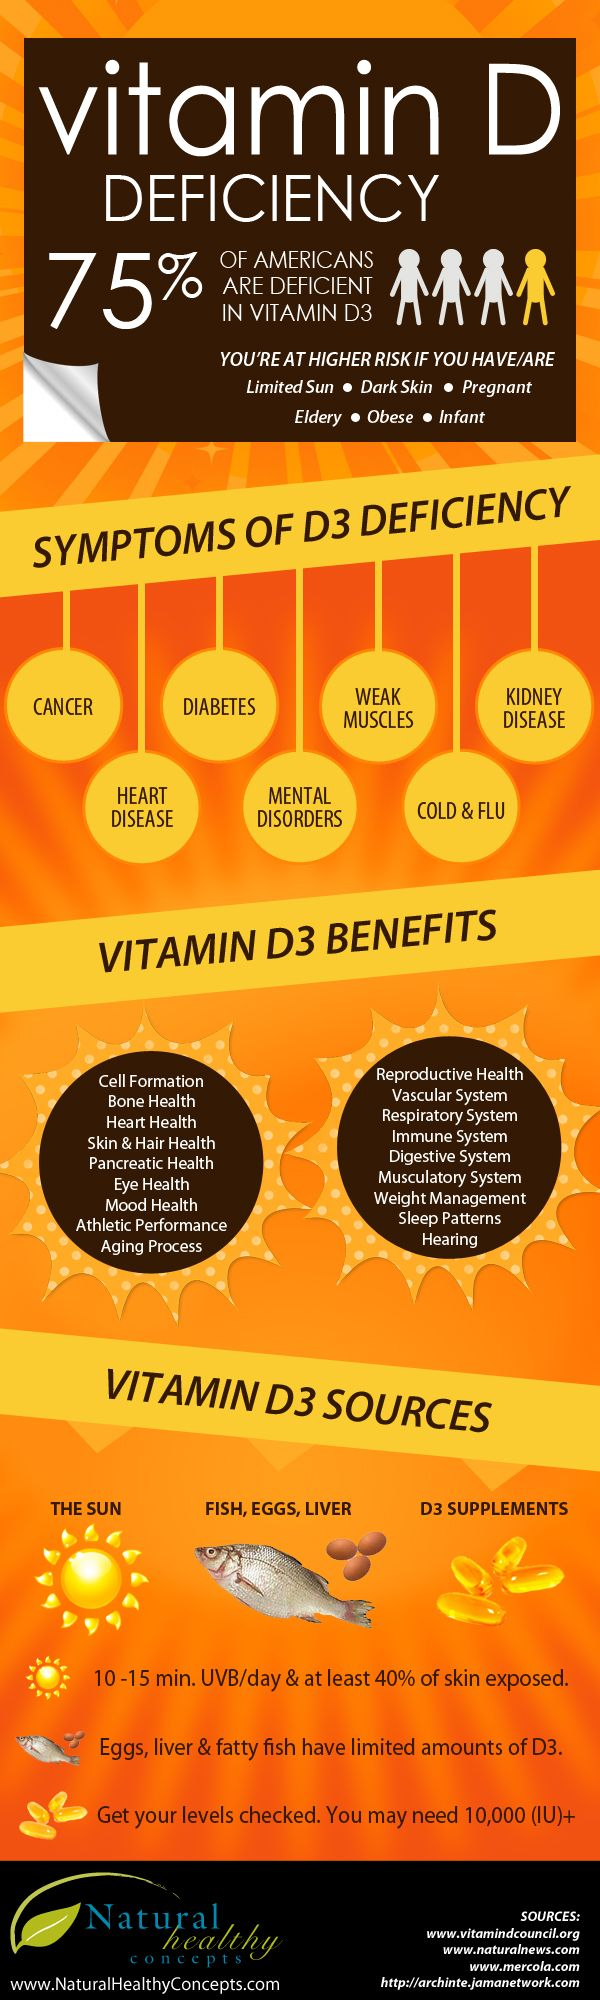 If you are out in midday sun for 15 minutes, eat eggs, fortified milk or omega-3 fatty fish you may not have a deficiency. Check with Dr.    #Vitamin_D -Deficiency #Infographic